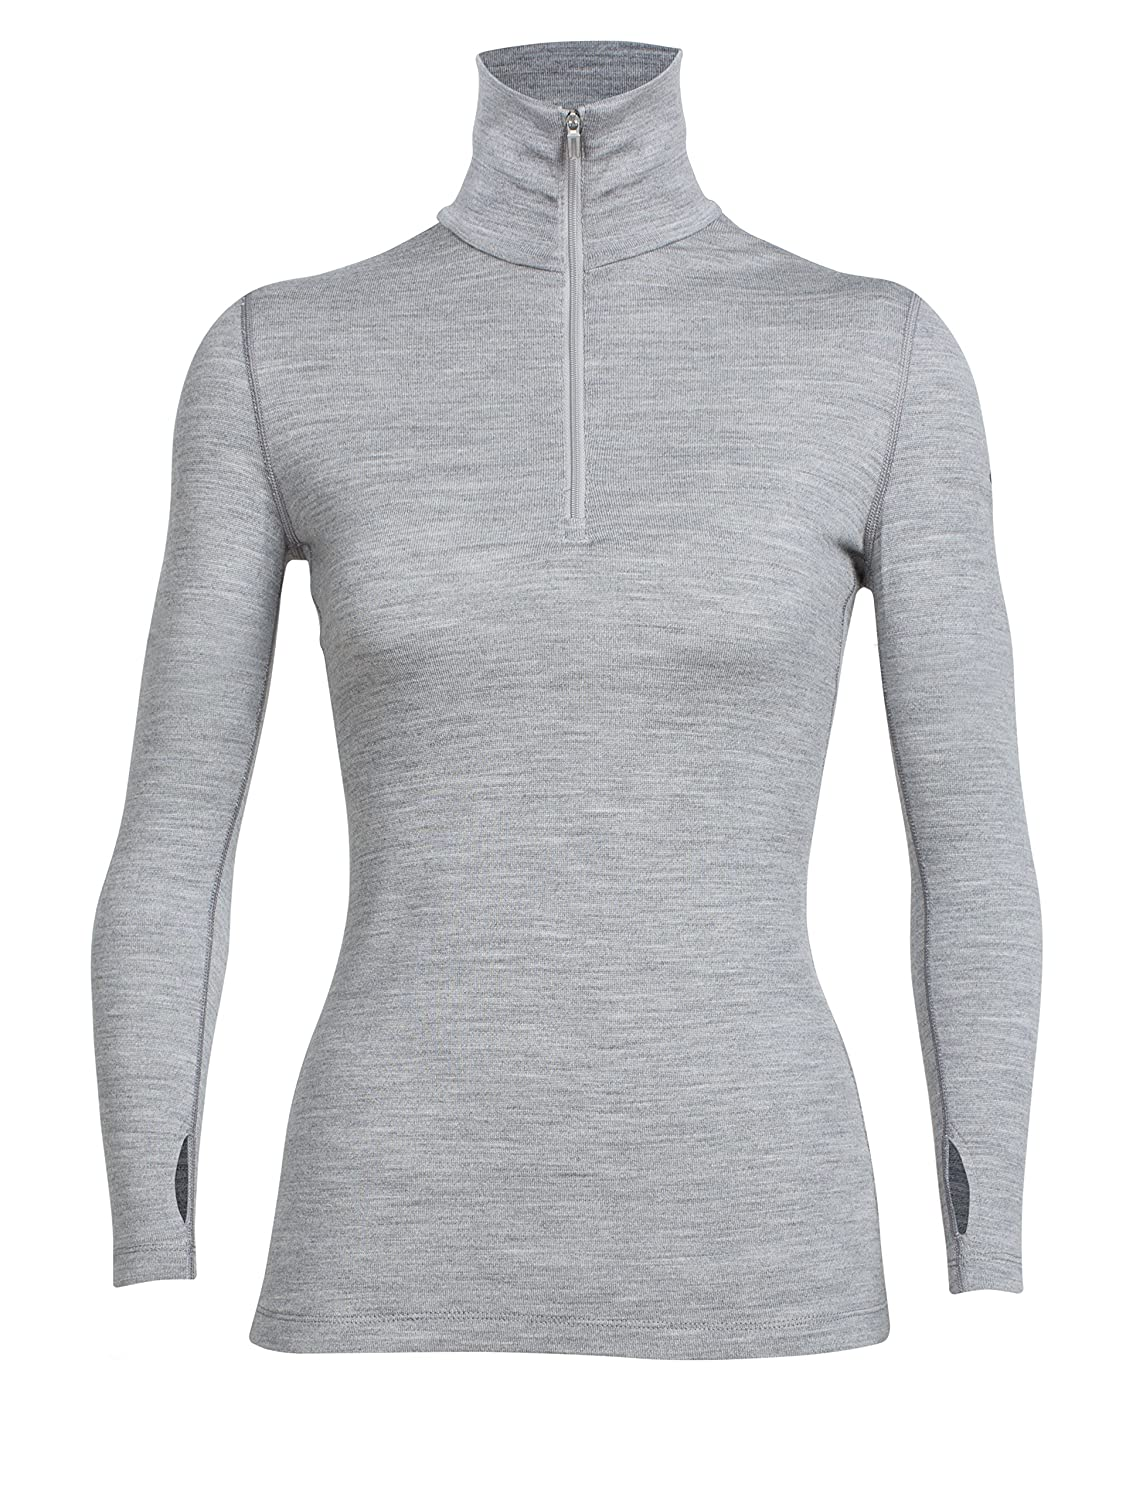 Icebreaker Damen Tech Top Long Sleeve Half Zip Shirt